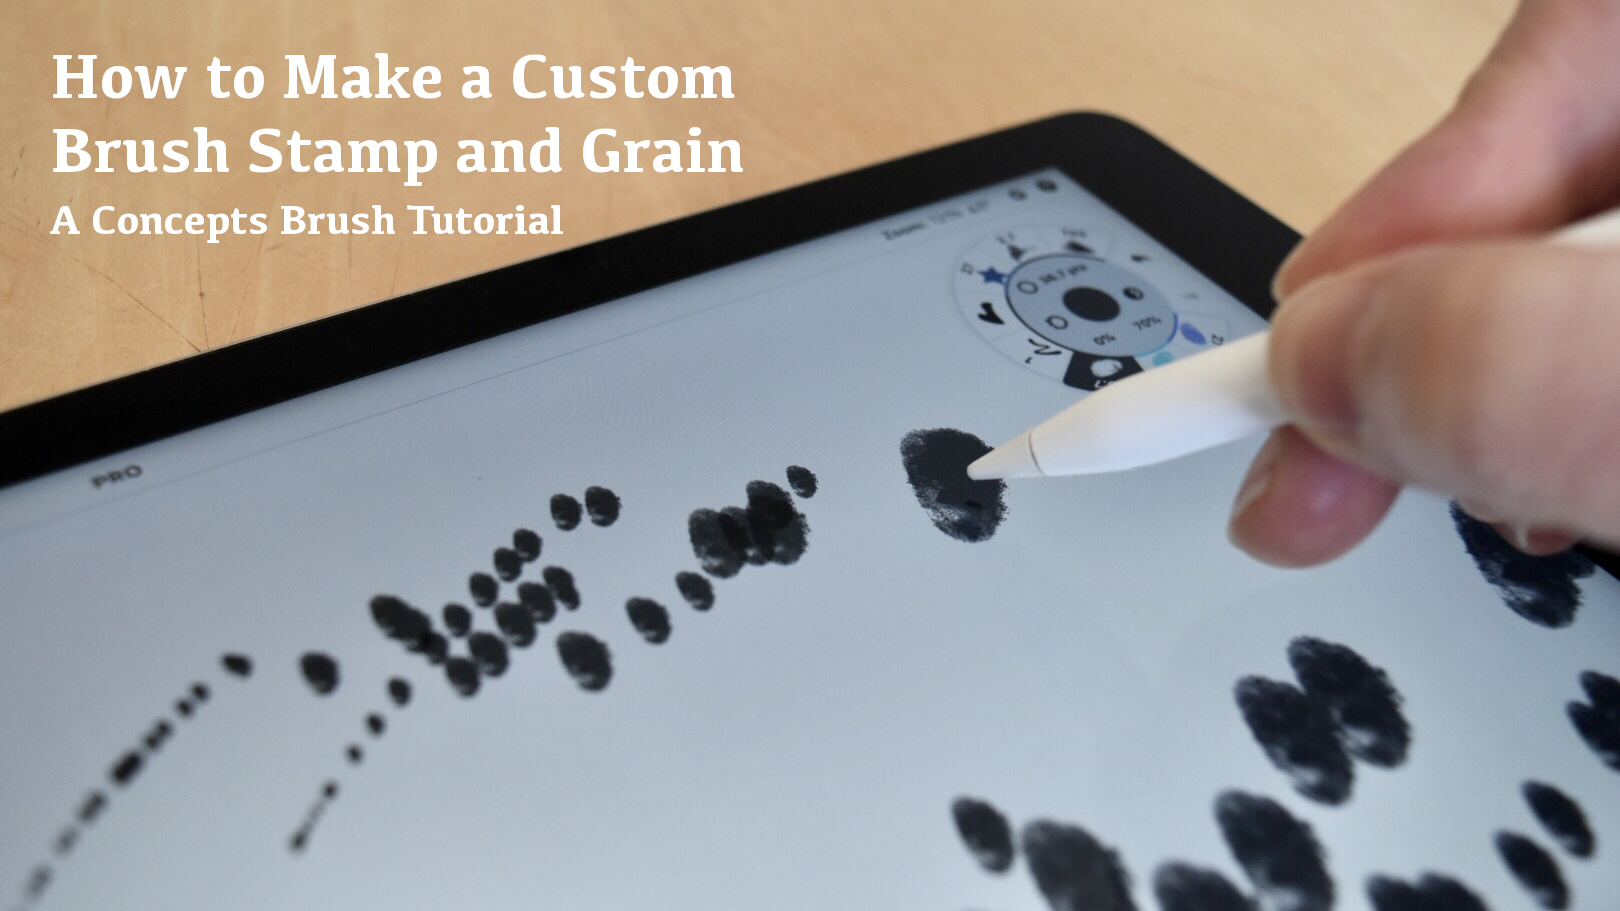 How to Make a Custom Brush Stamp and Grain tutorial